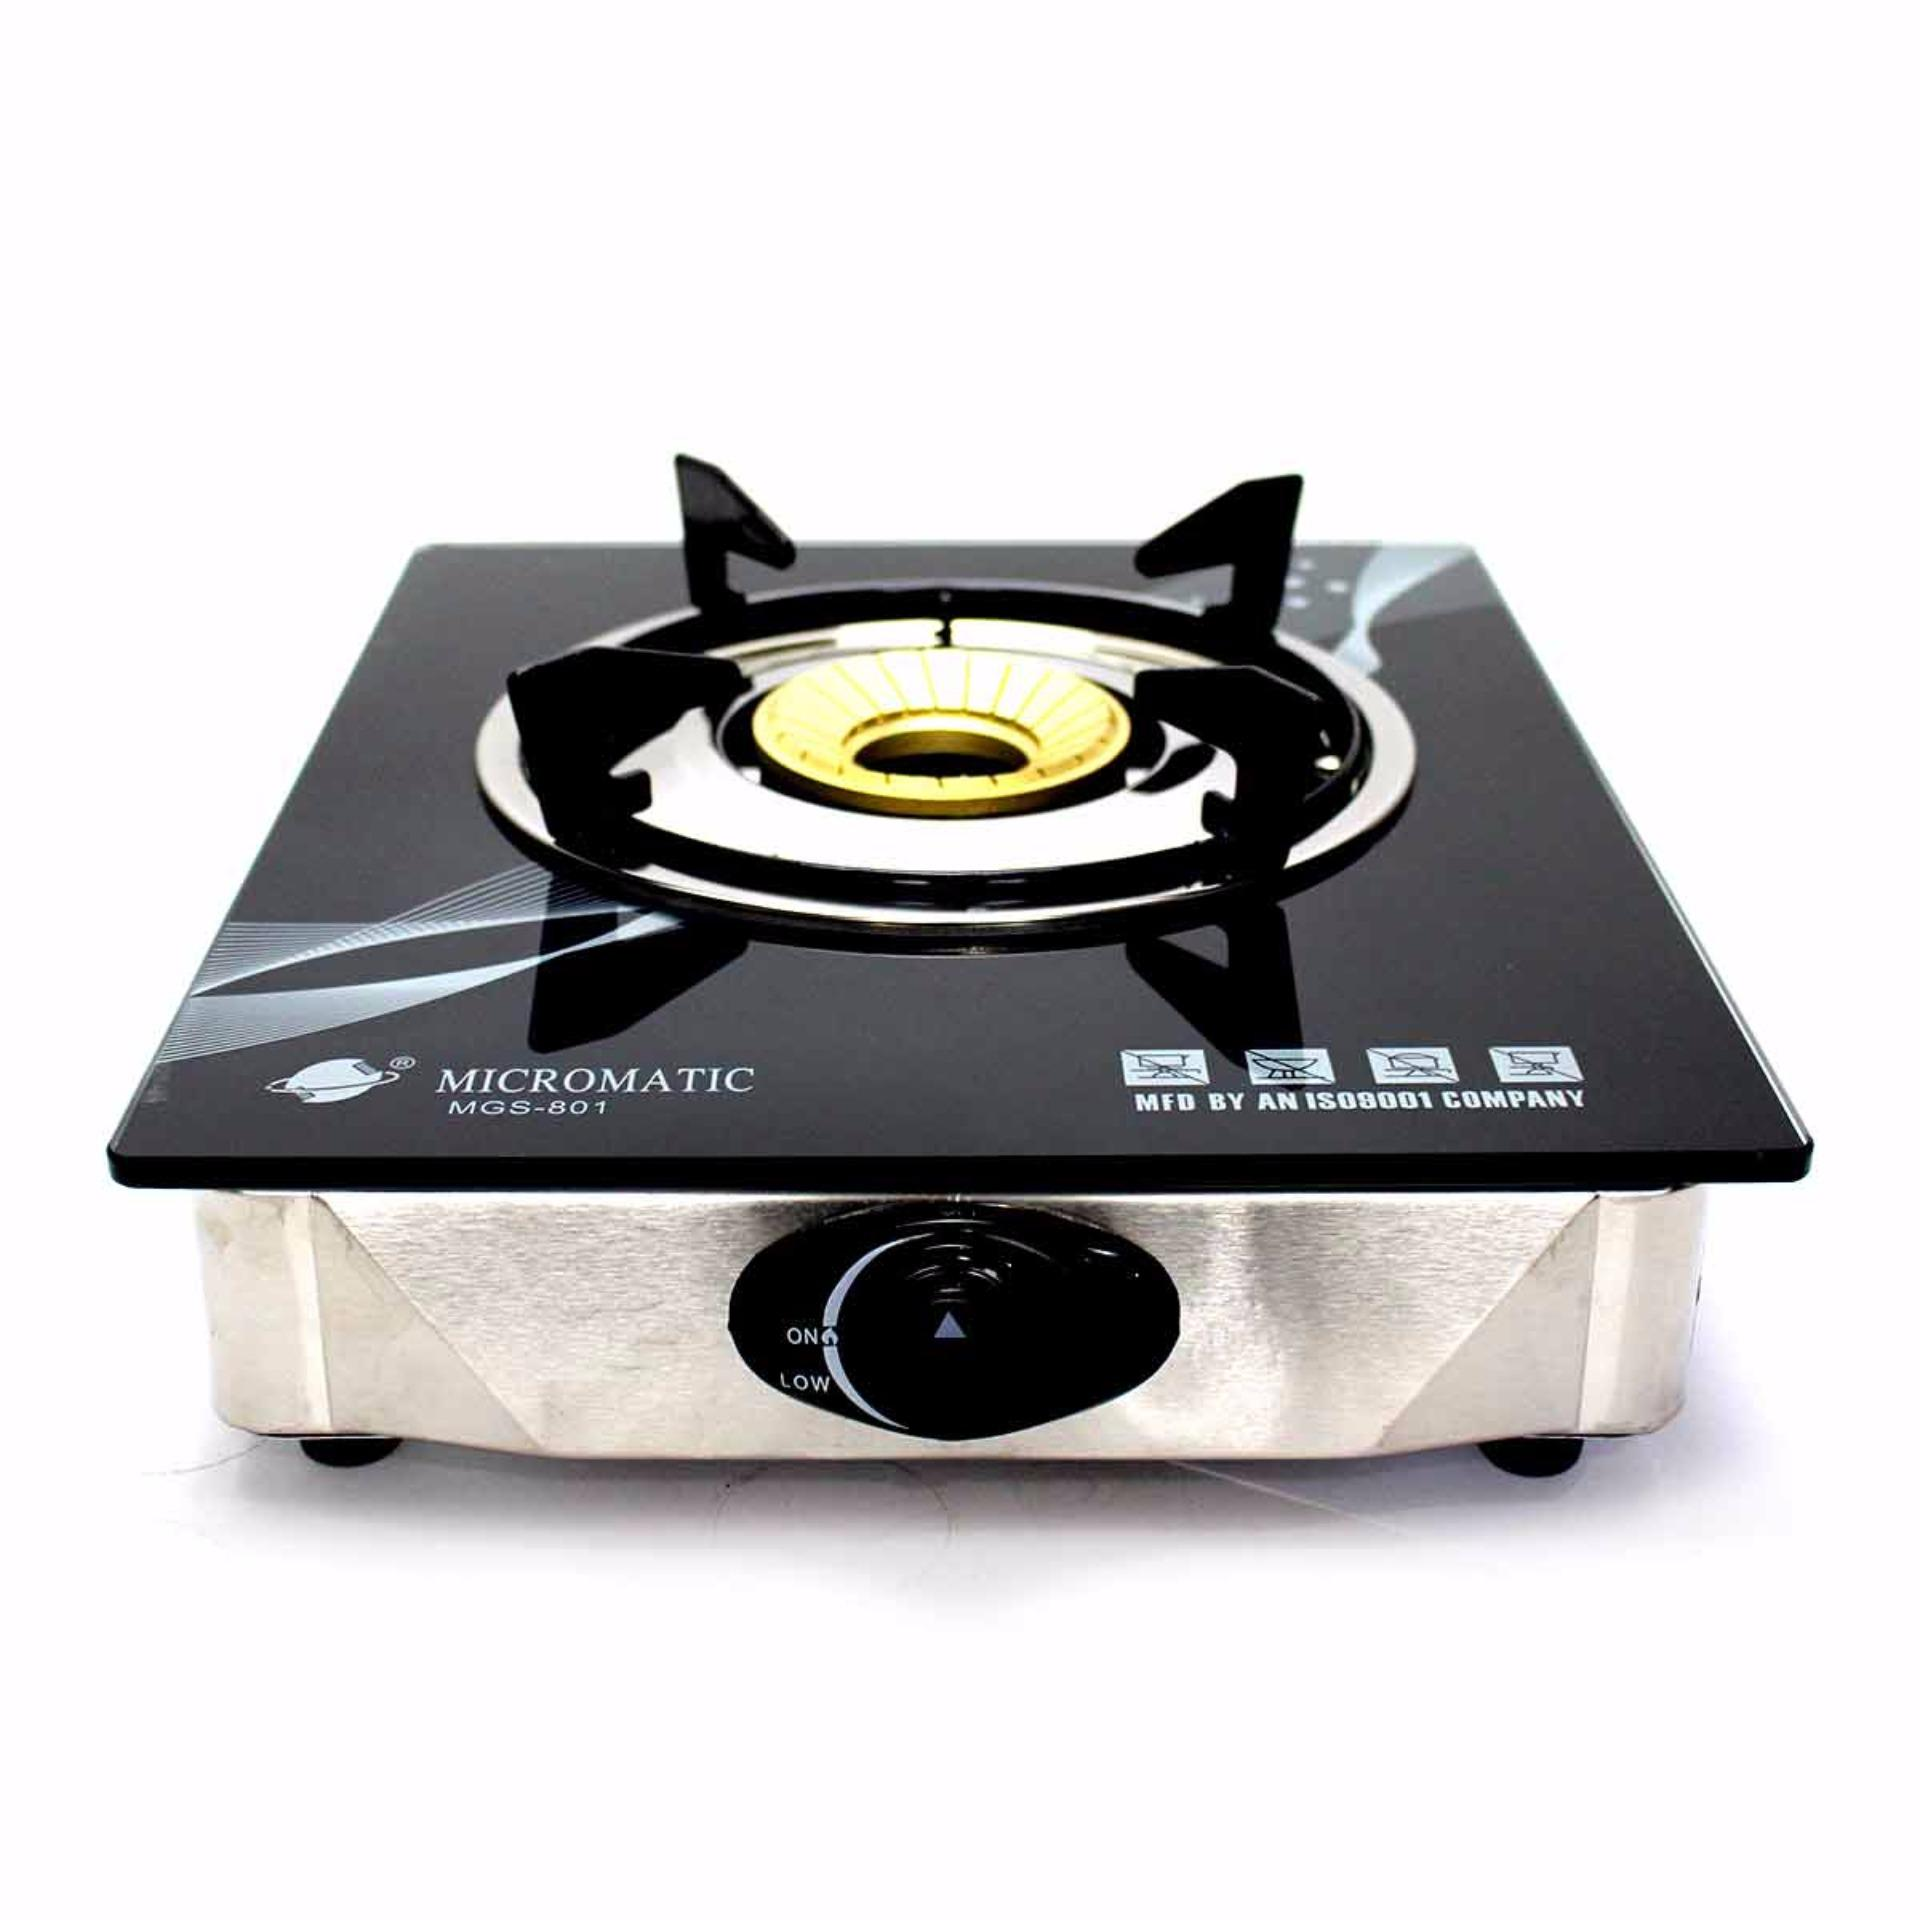 black singles in gas Product overview cook all your favourites and try out new recipes with this built-in black single gas oven from stoves because it's a conventional oven, heat rises inside, making it cooler at the bottom and perfect for traditional bakes.